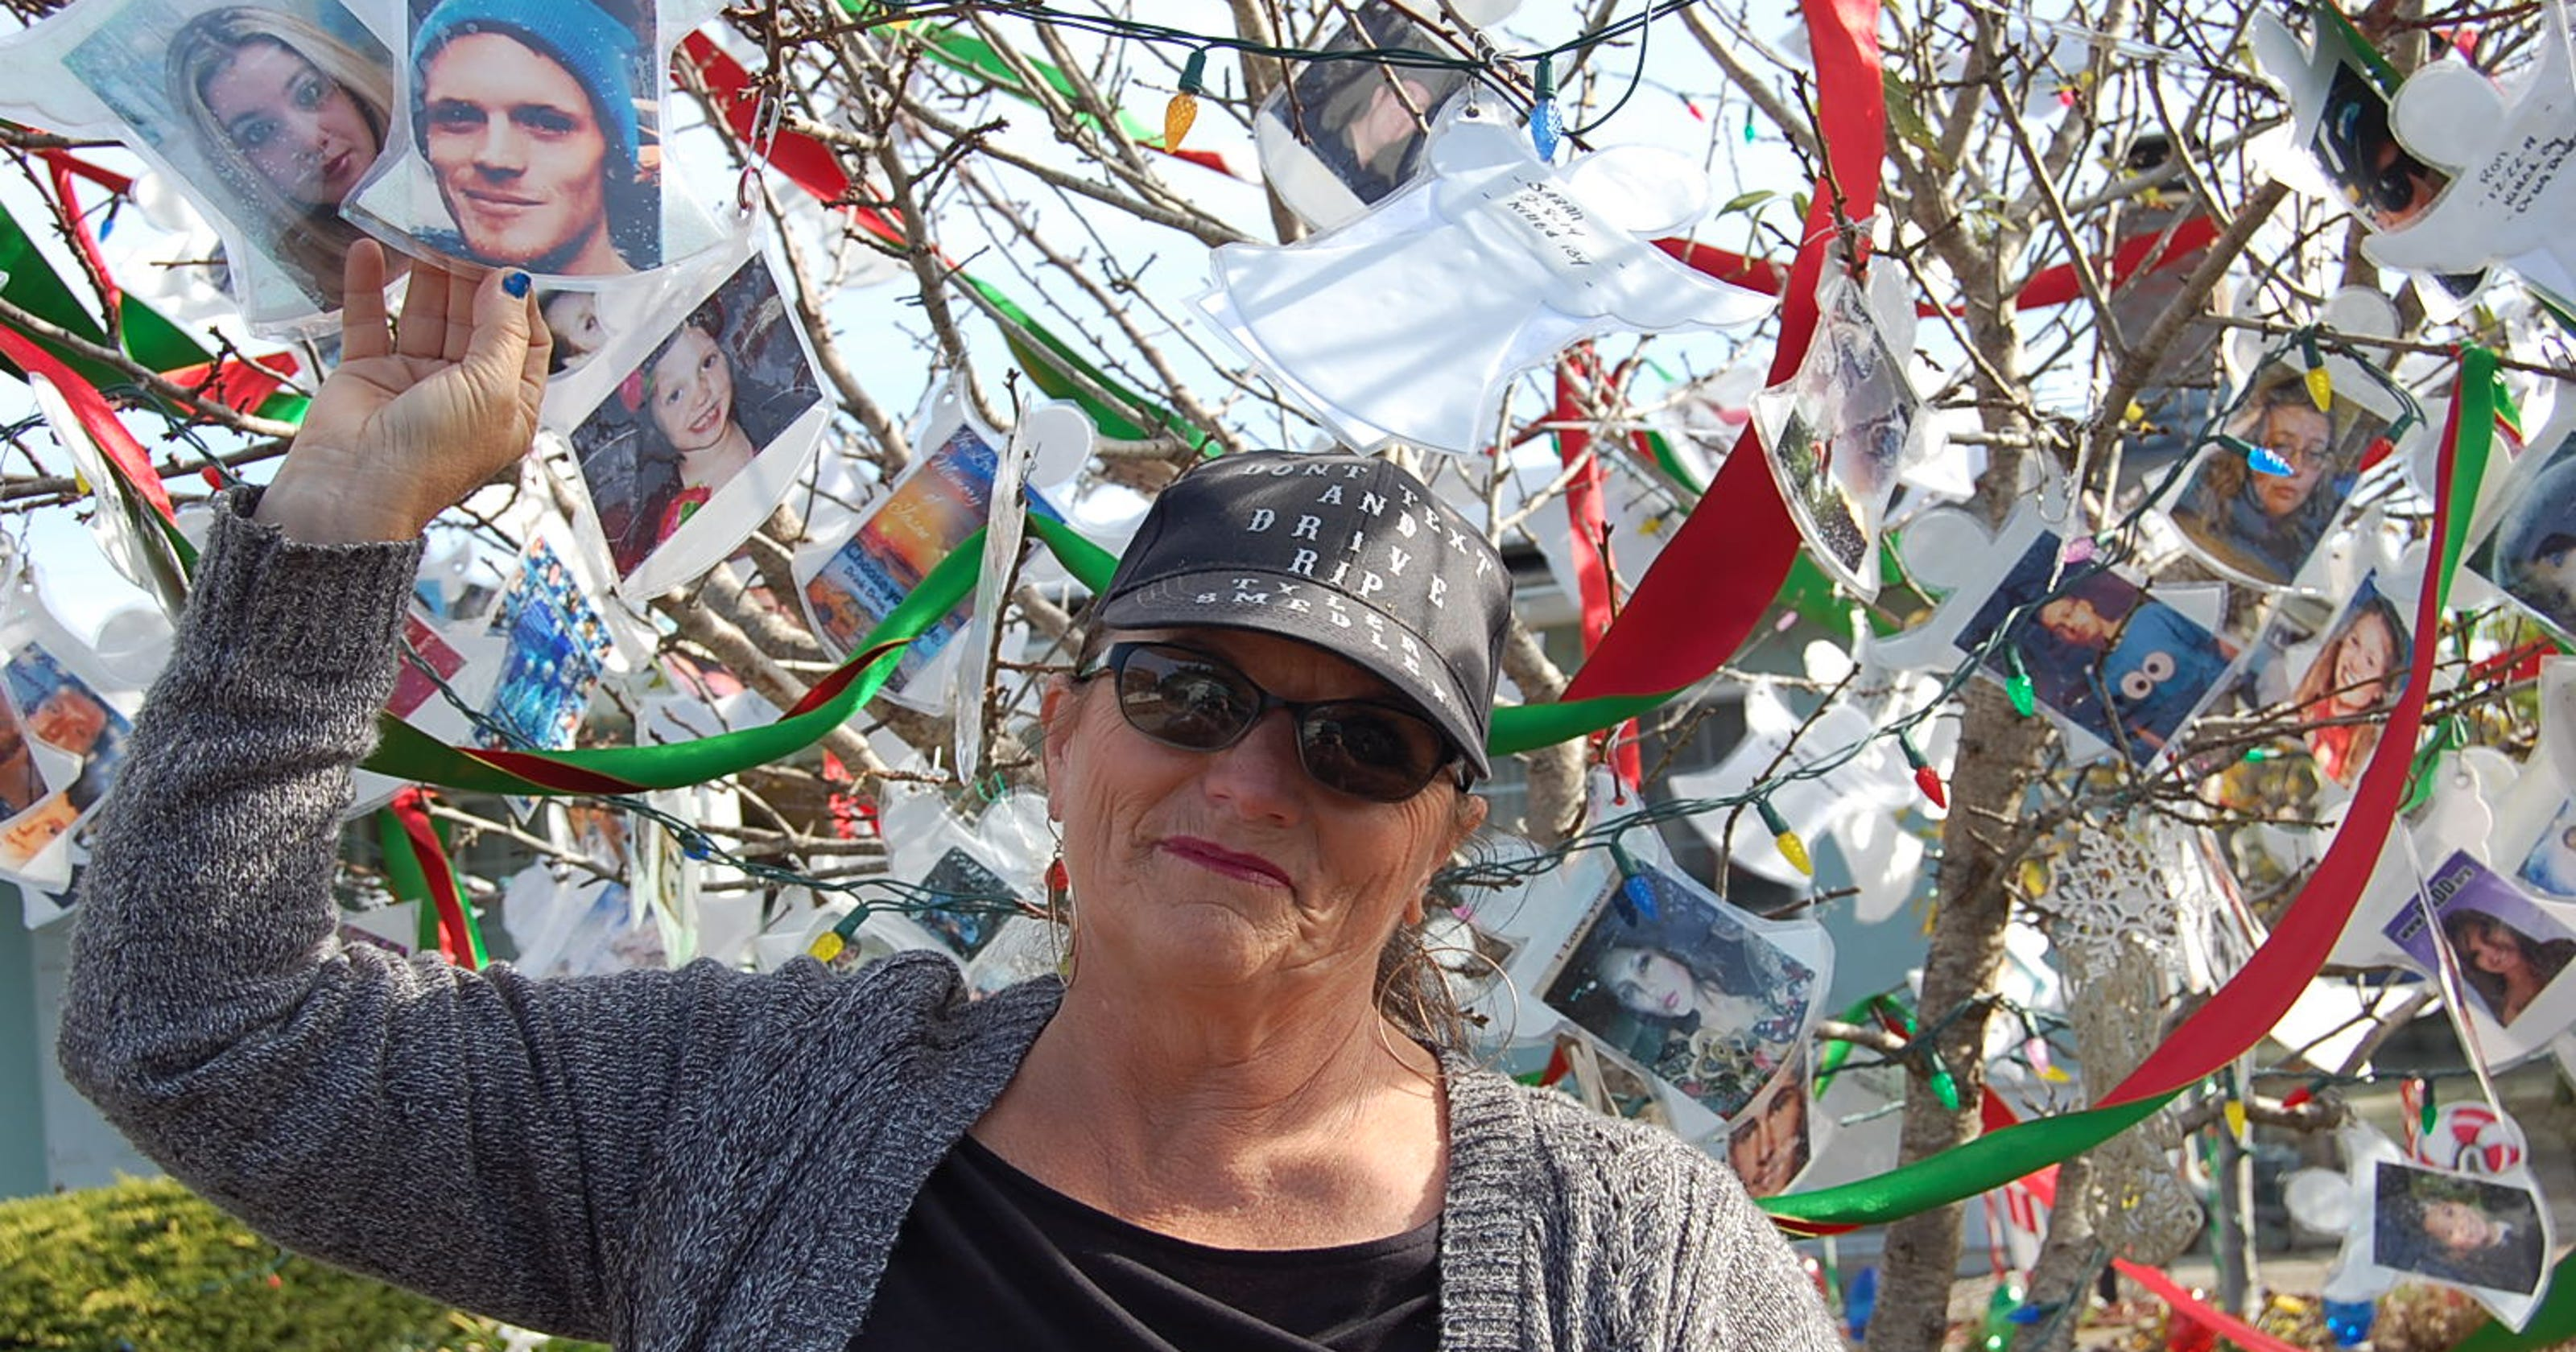 Marina woman memorializes nephew, others lost to distracted driving